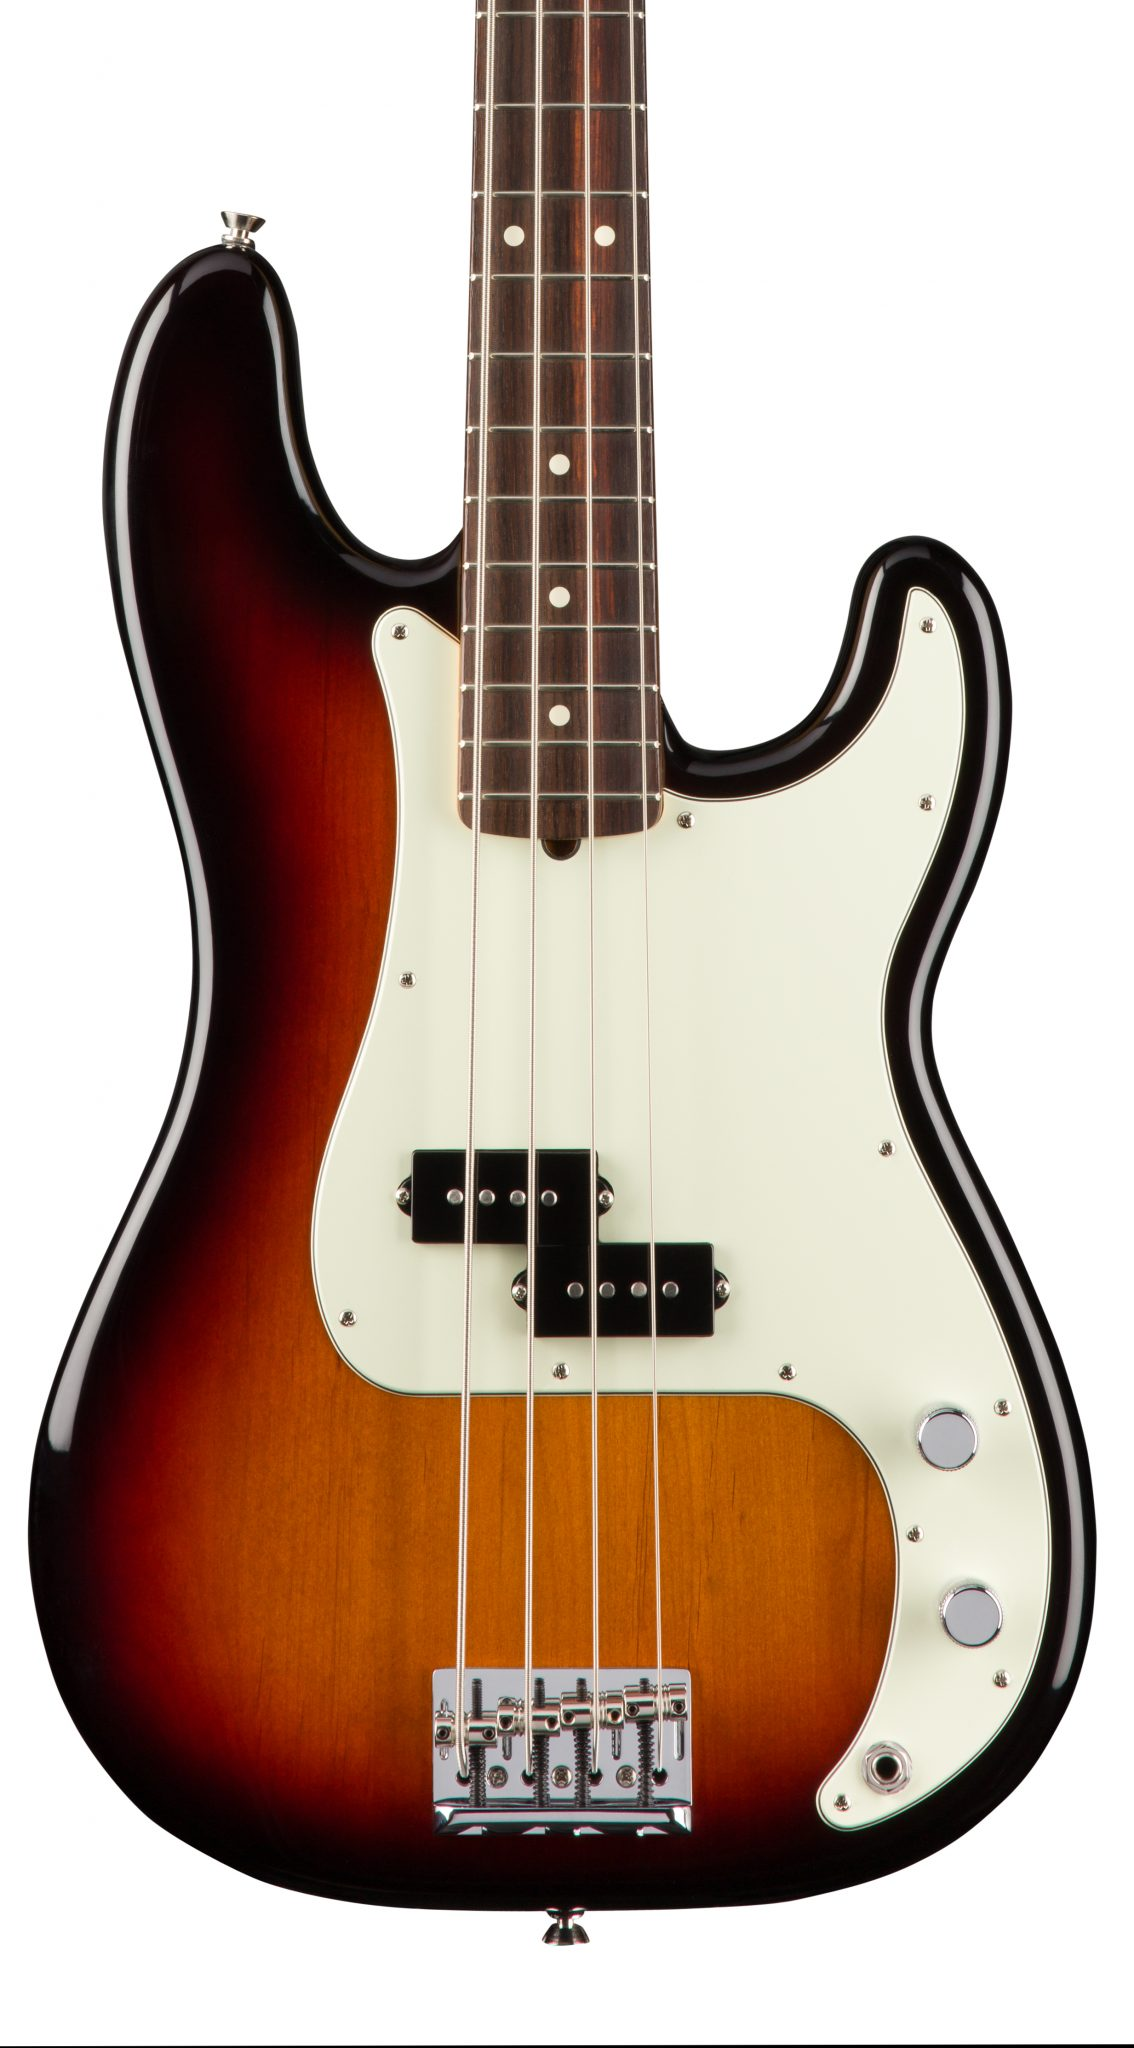 Fender American Professional Precision Bass - 3 Color Sunburst with Rosewood Fingerboard